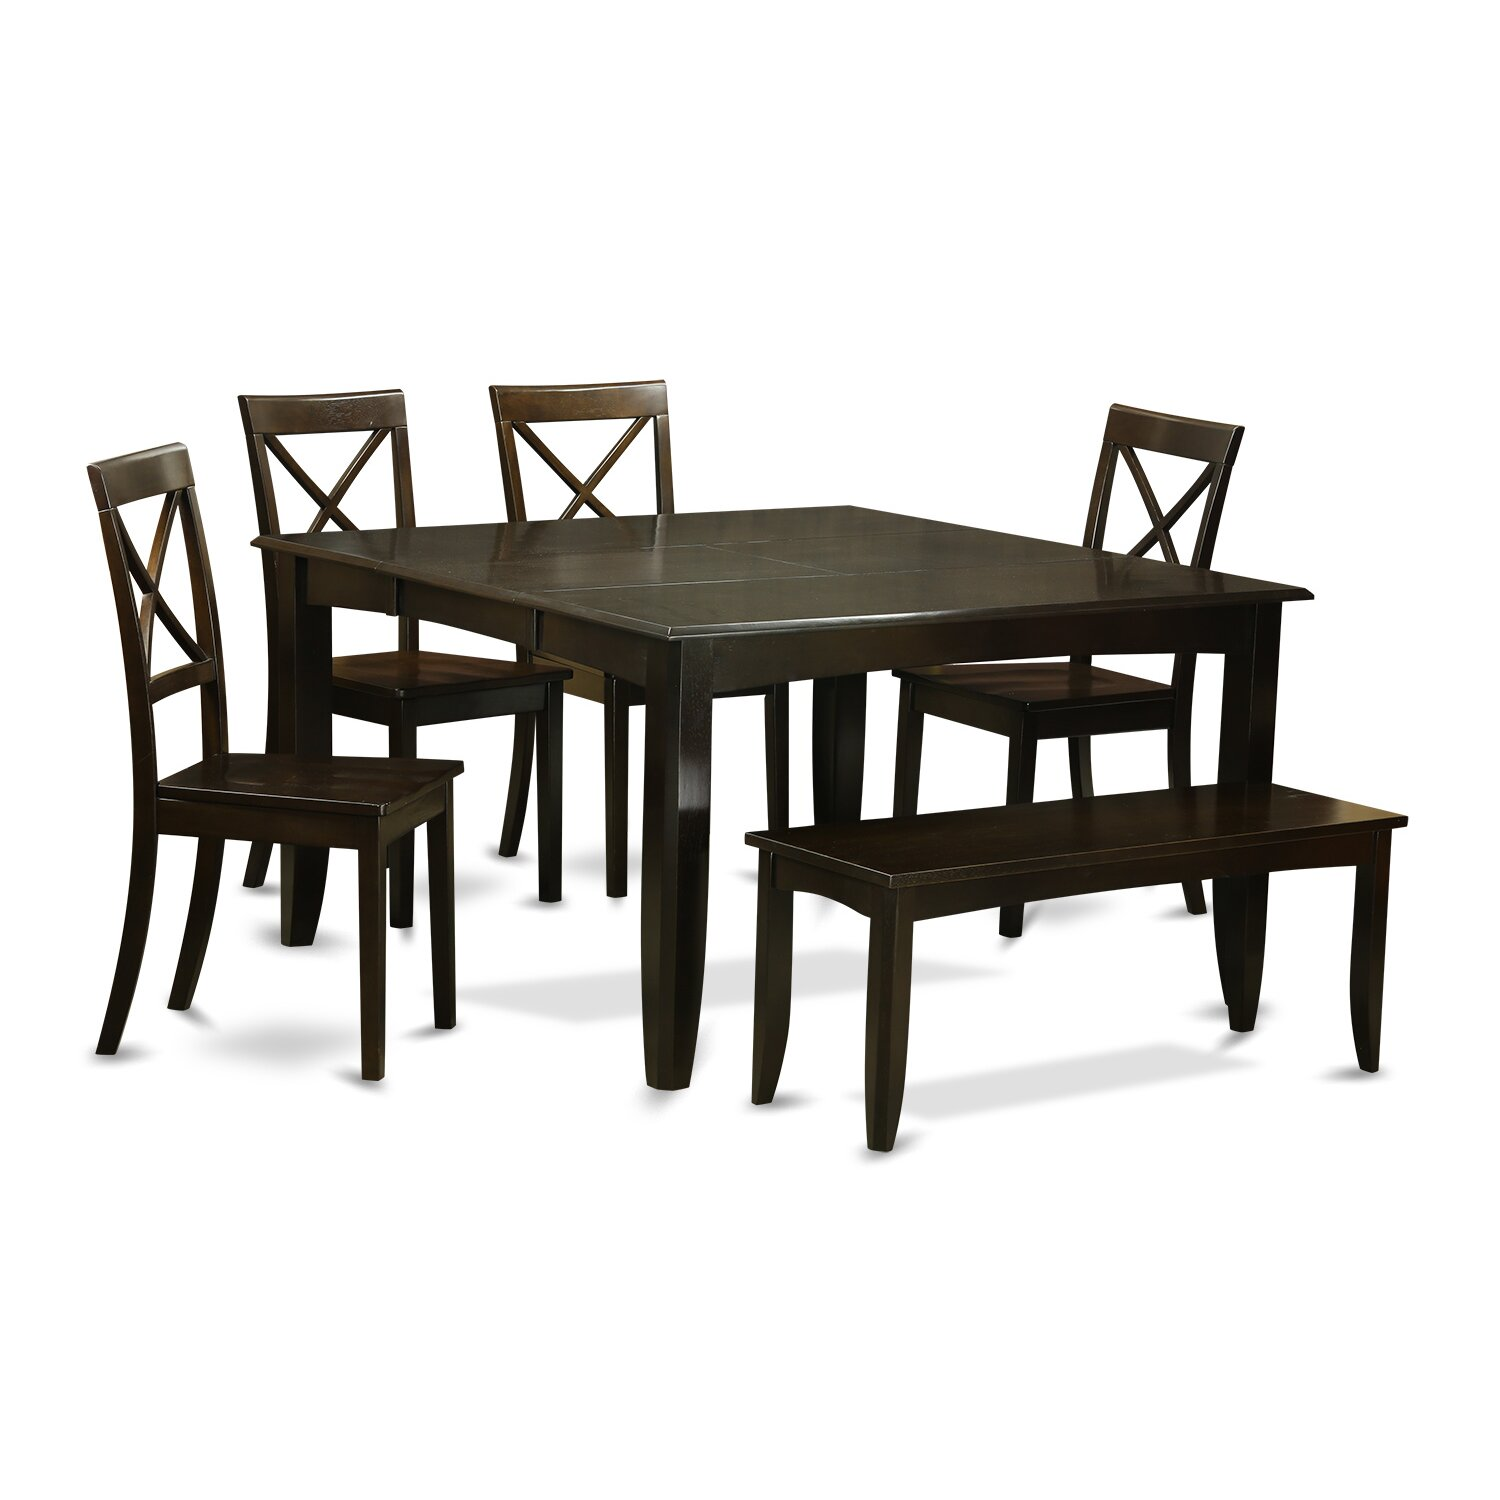 Piece Dining Room Set With Bench Dining Table With Leaf And 4